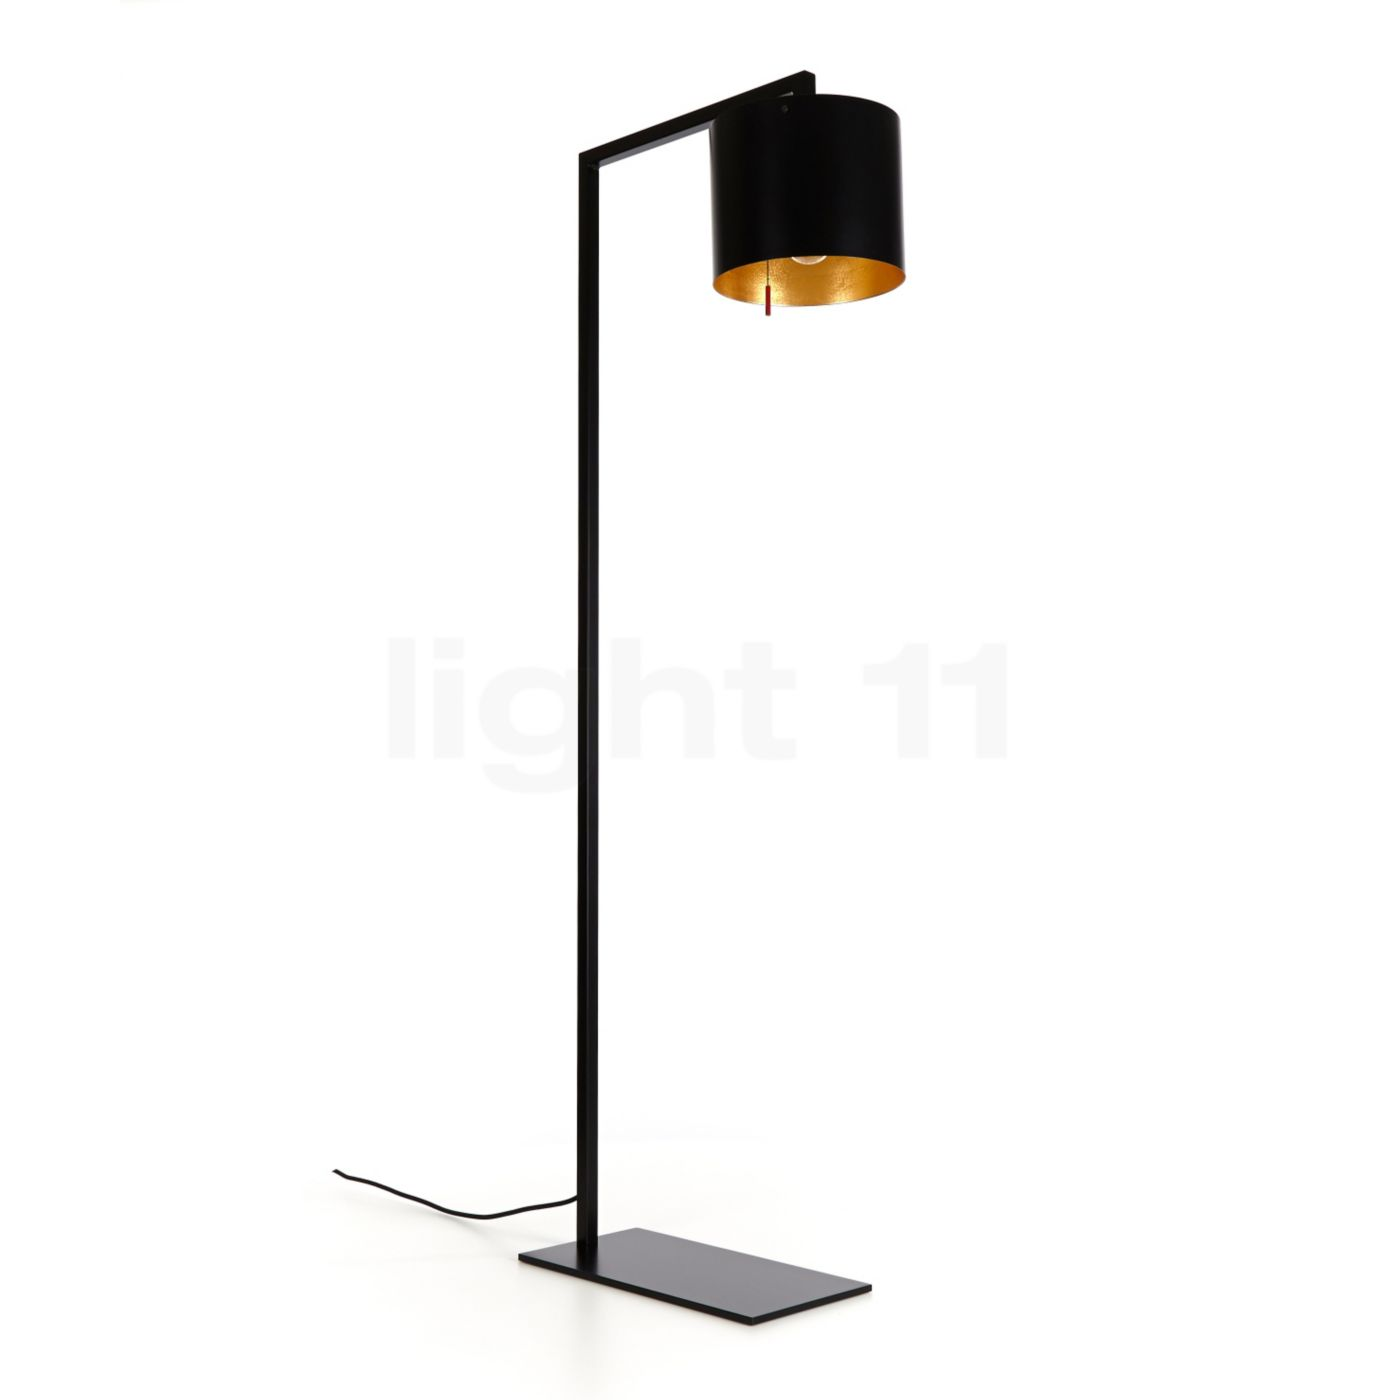 Anta Afra Floor Lamp Reading Light Buy At Light11.eu